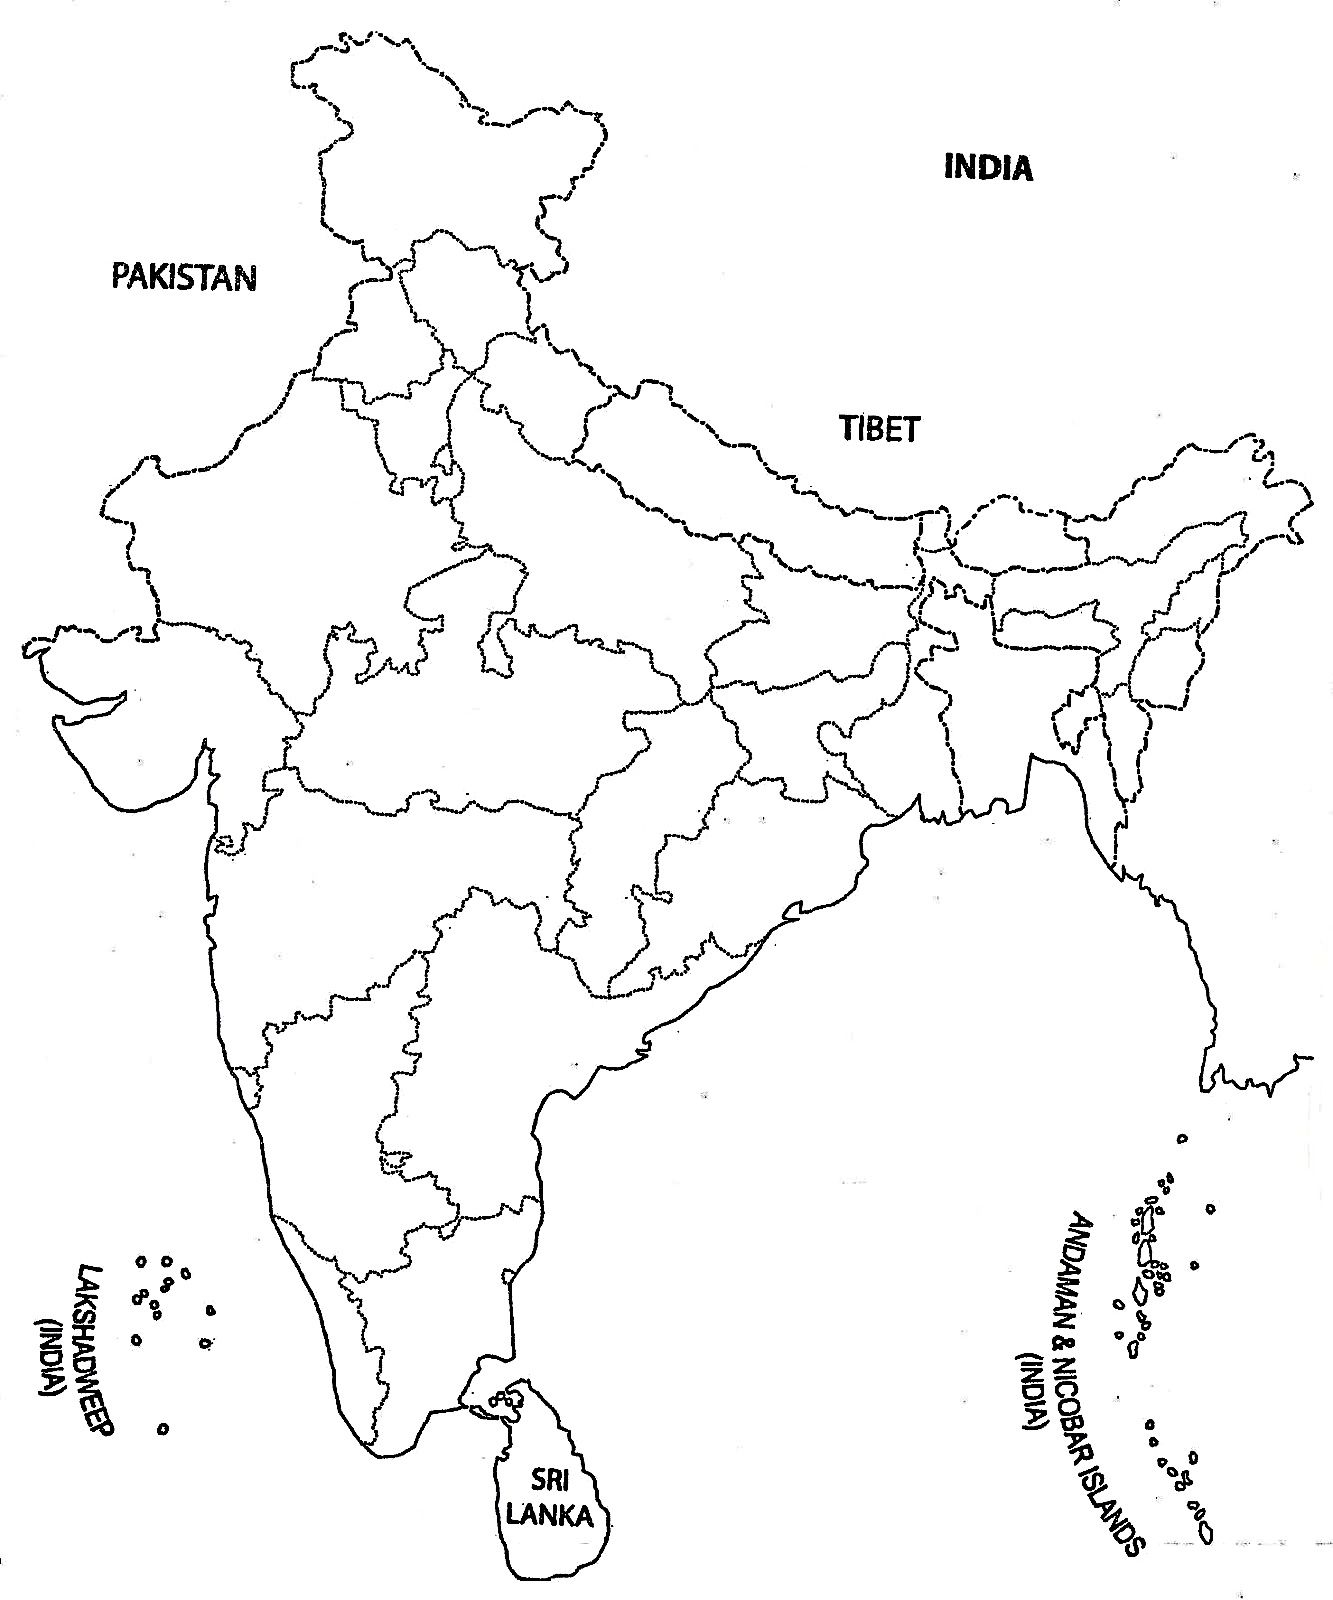 Indian Political Map Outline india map outline a4 size | Map of India With States | India map